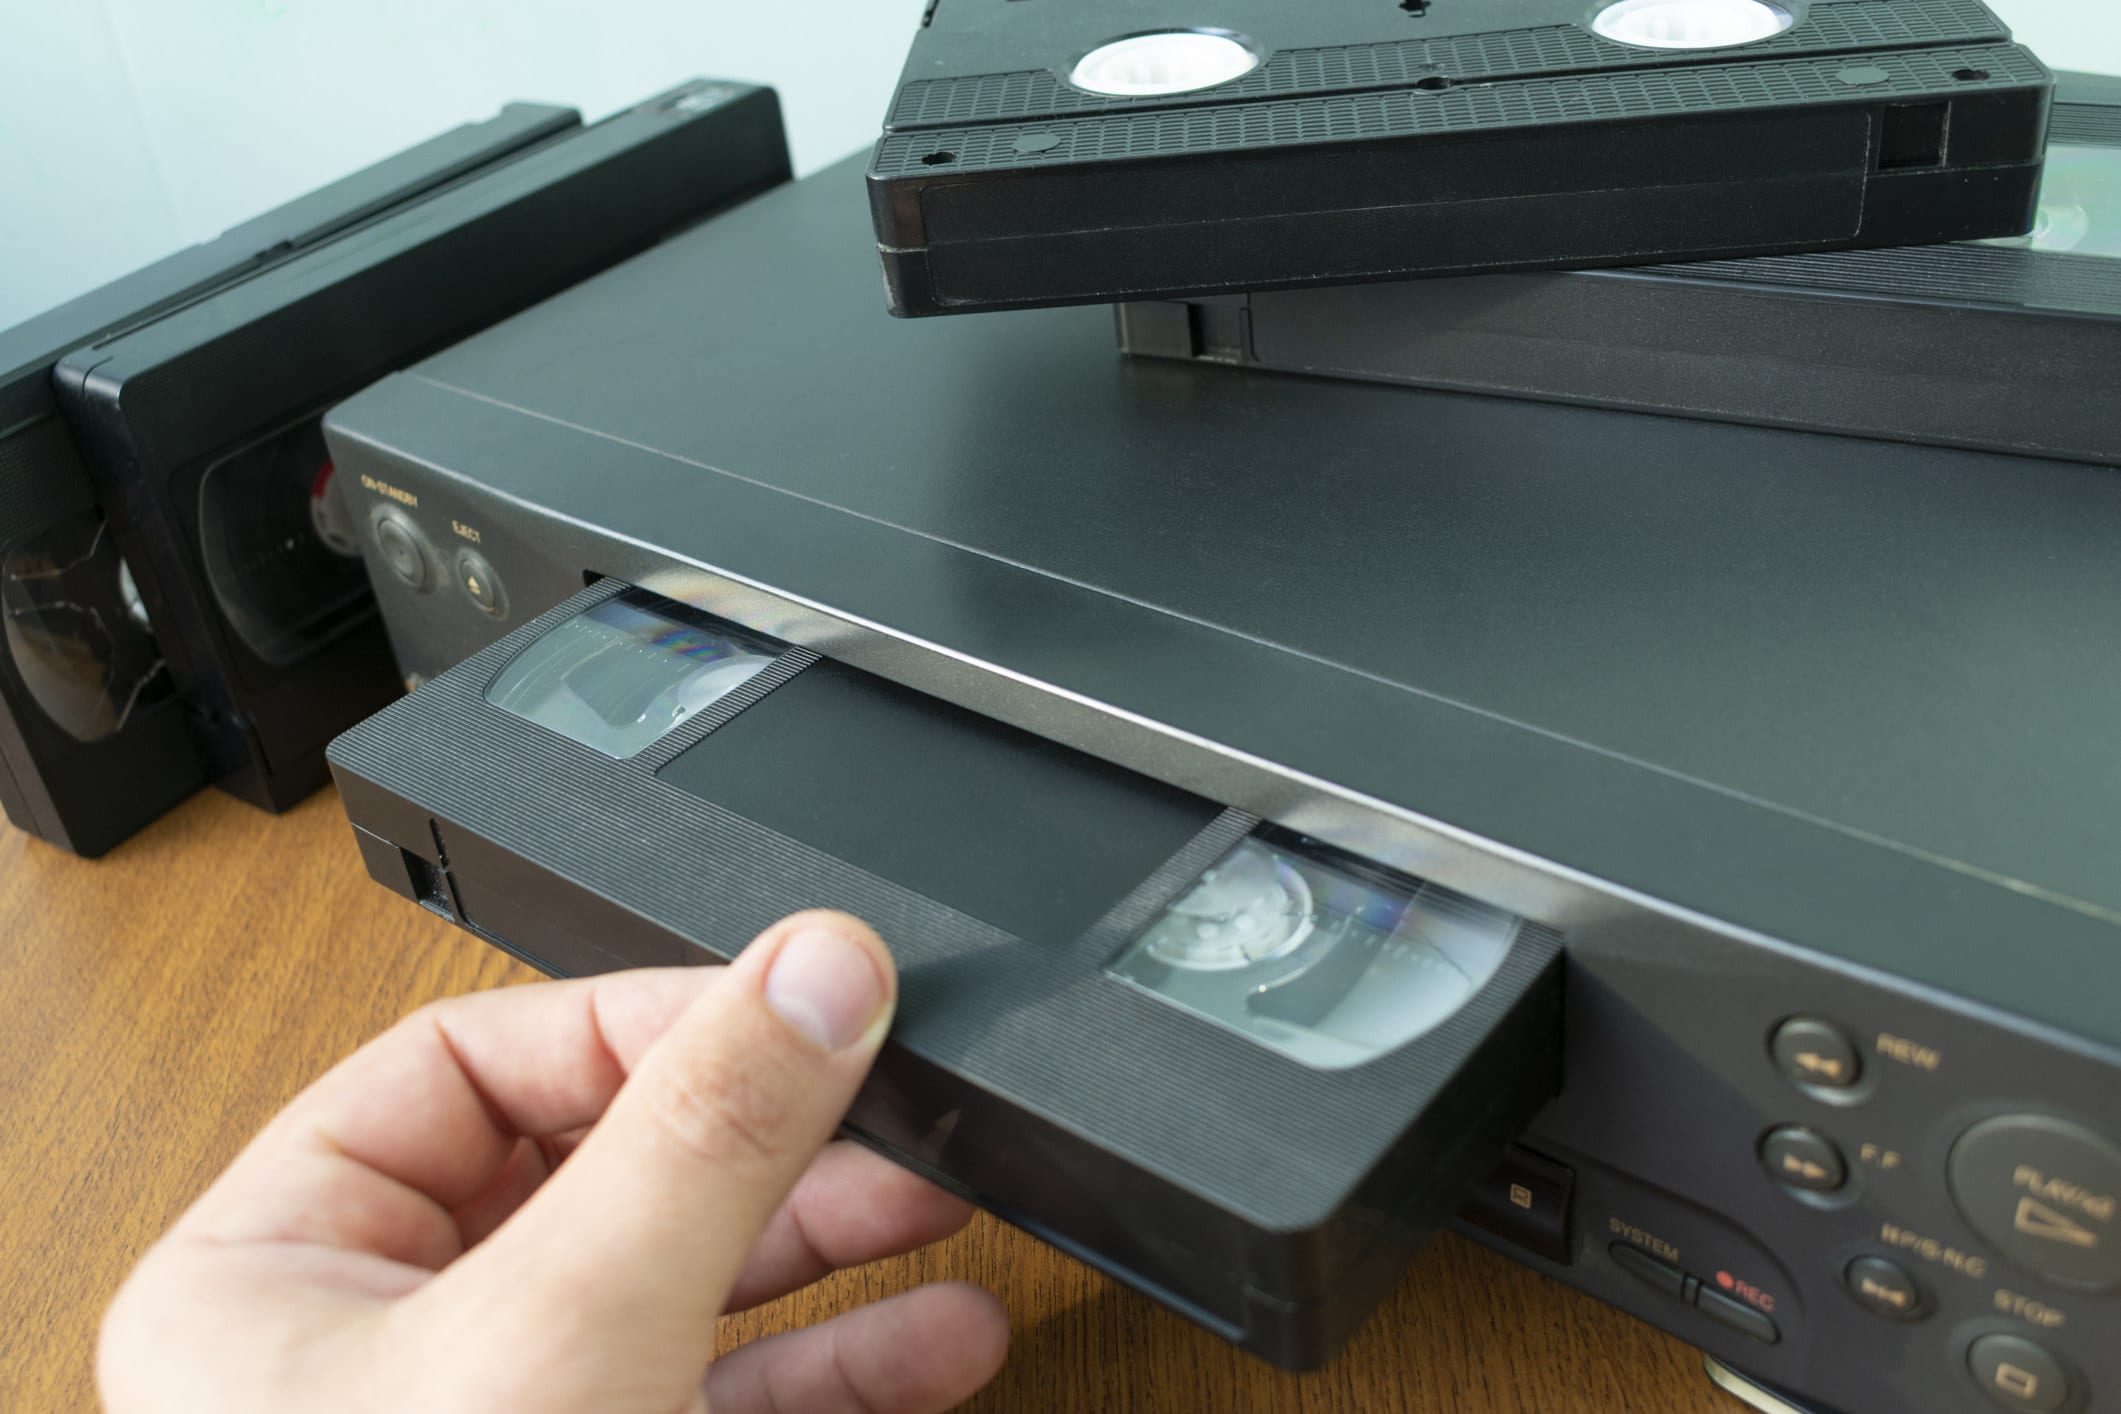 Someone inserts a VHS tape into a VHS player